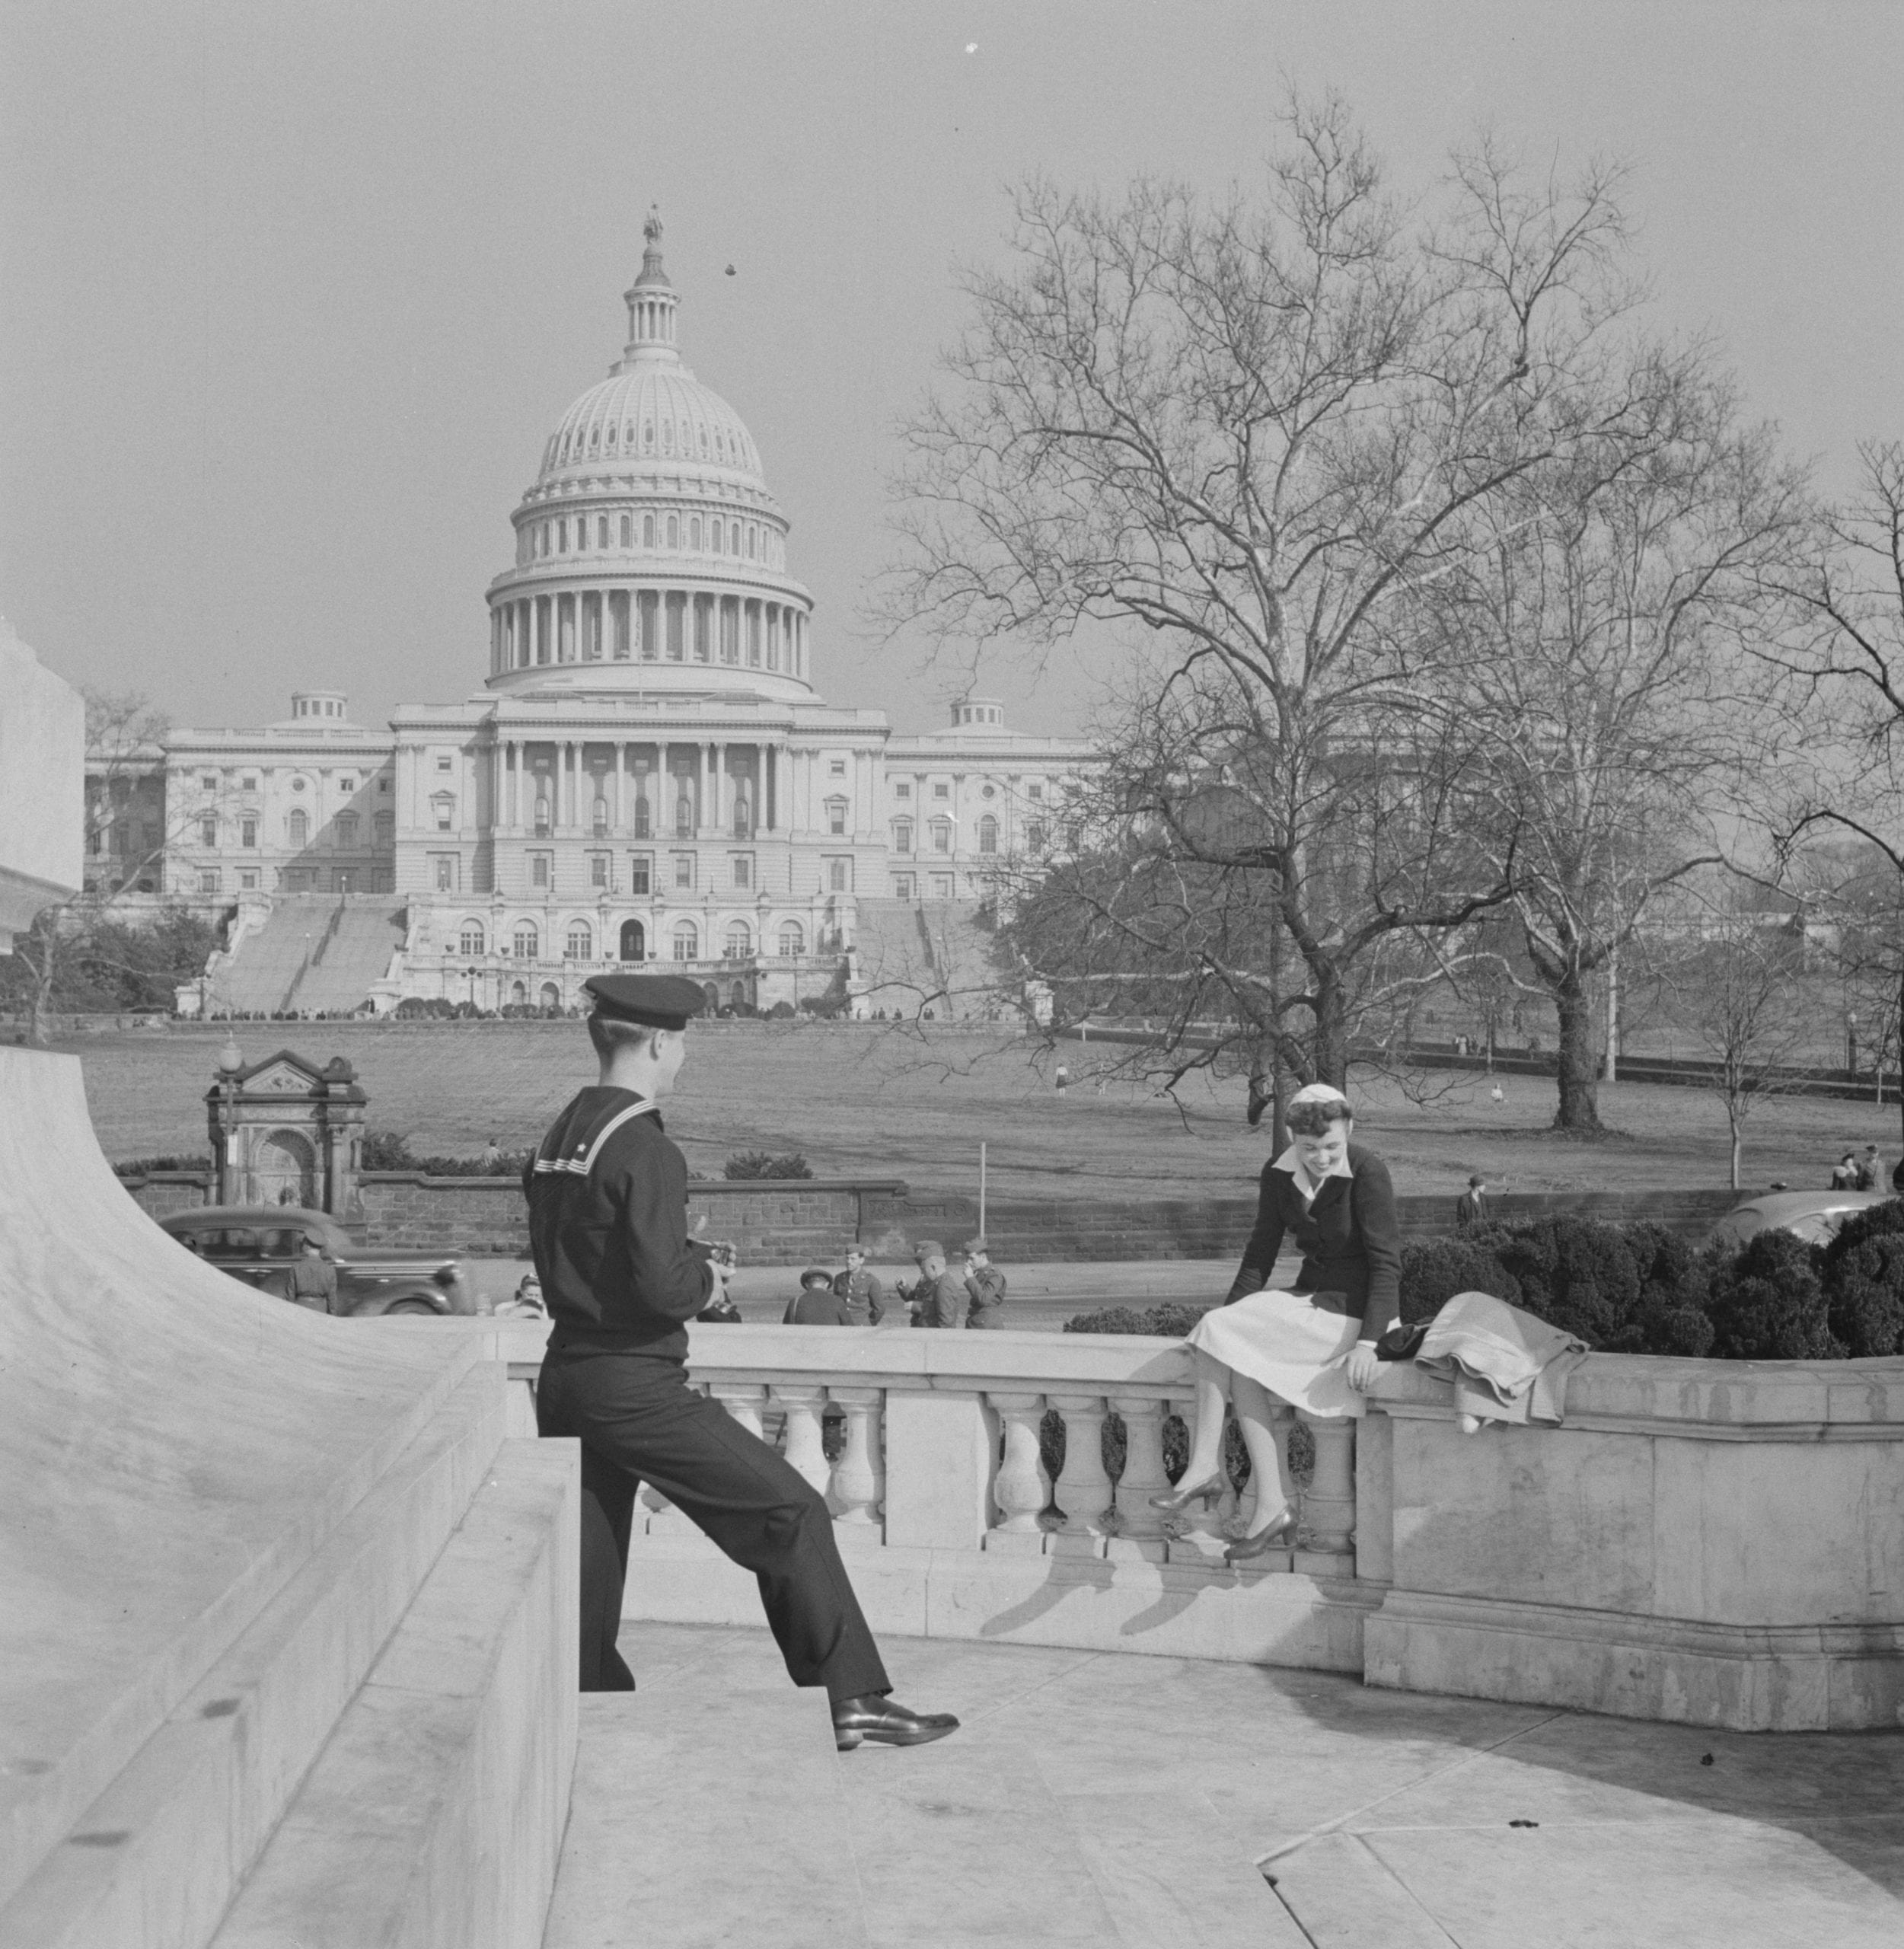 Washington, D.C. Sailor taking a picture of his girlfriend at a monument in front of the Capitol on a Sunday afternoon